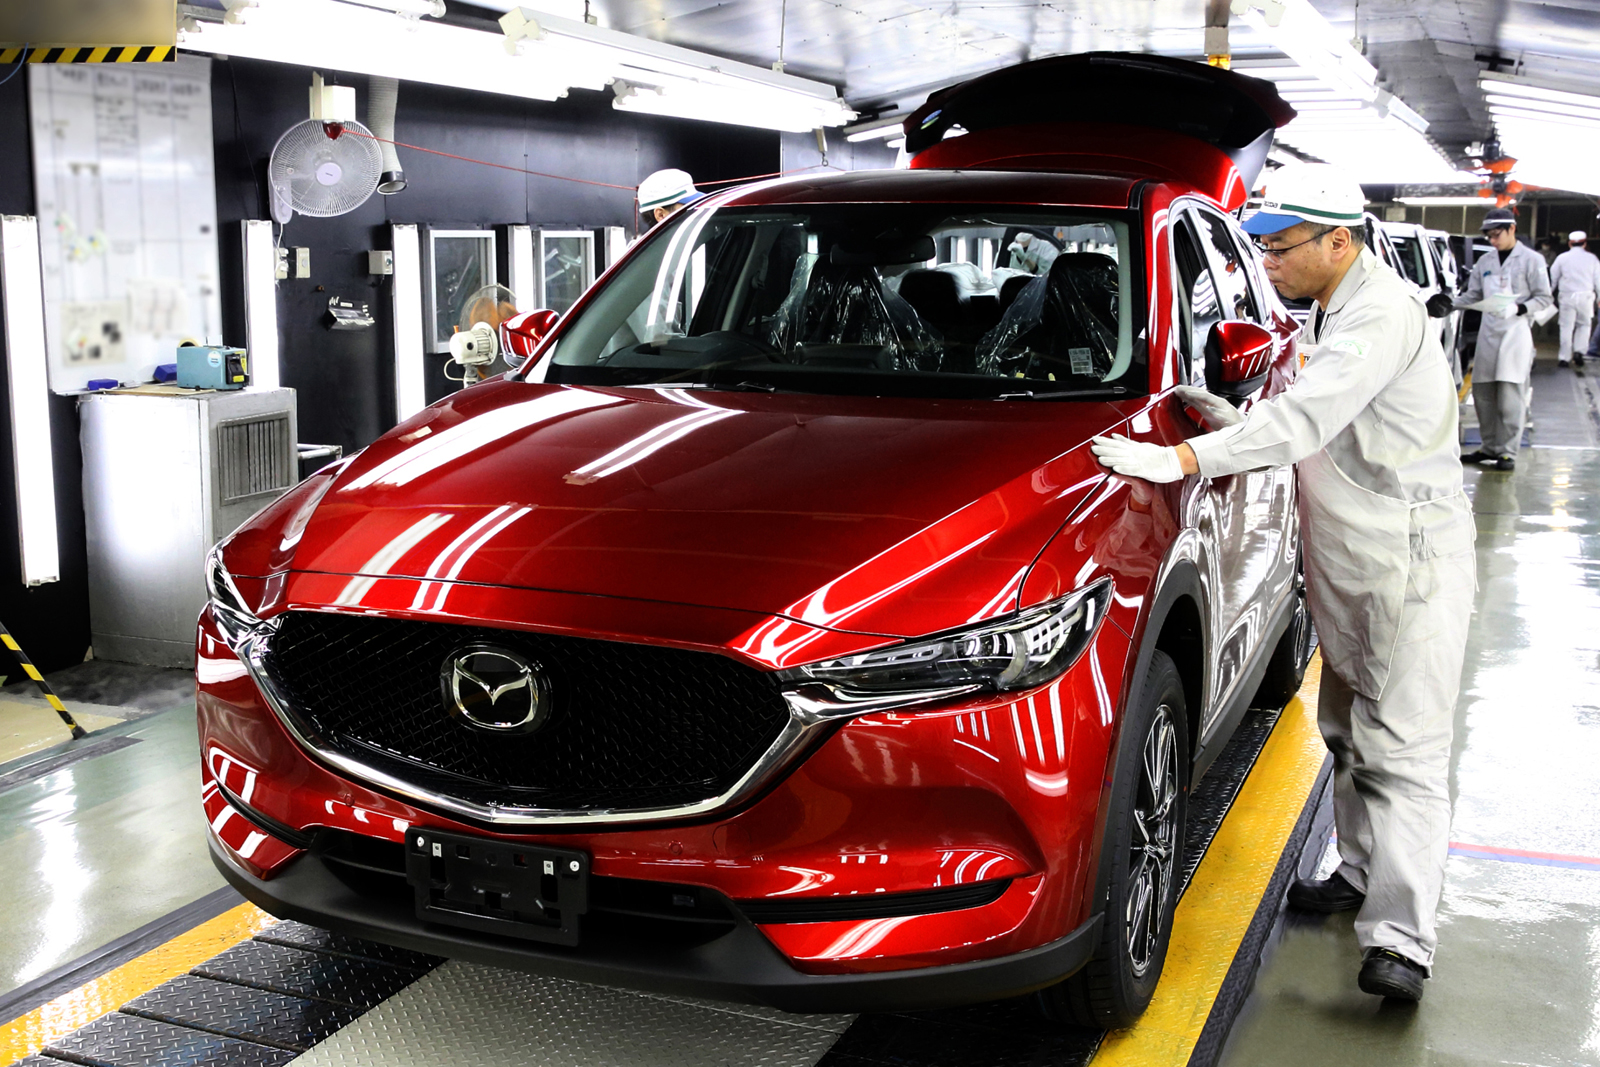 All-New_CX-5_Job1_inspection.jpeg